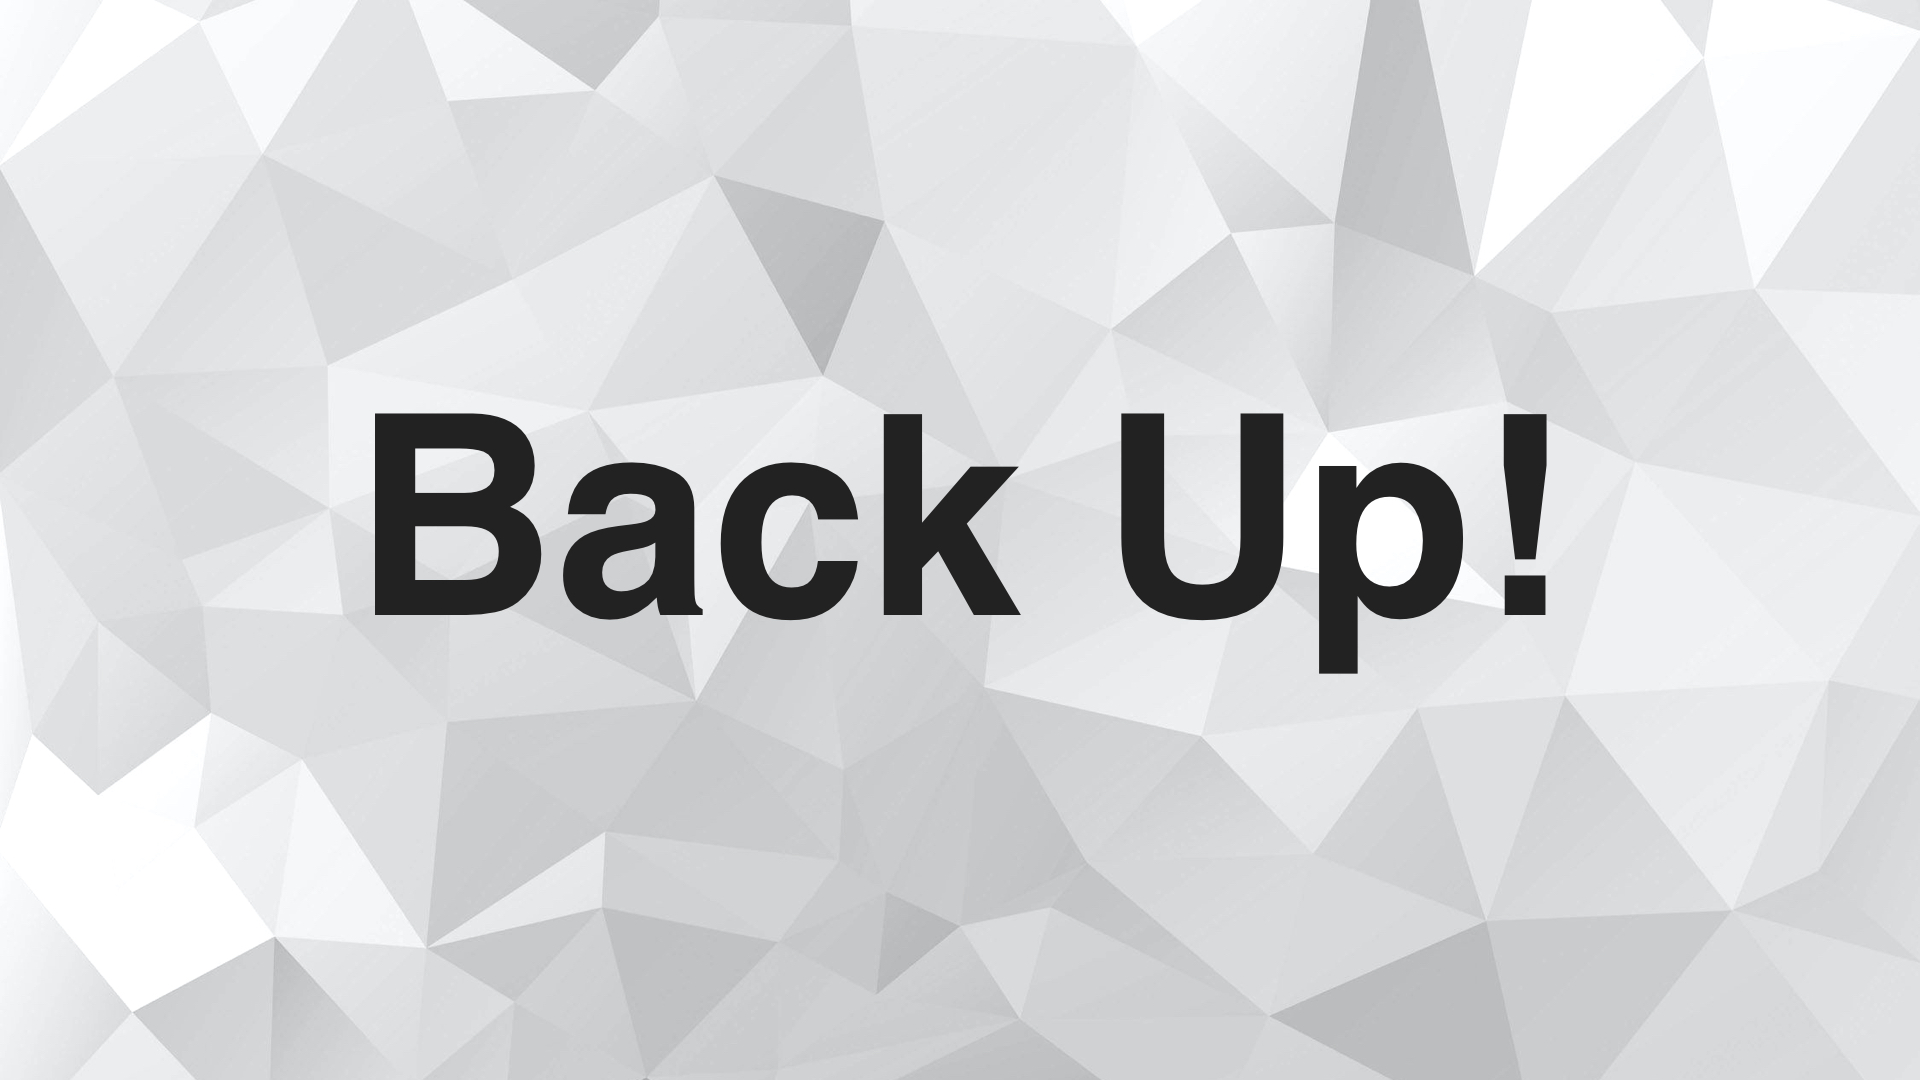 Backing up is not only for your data